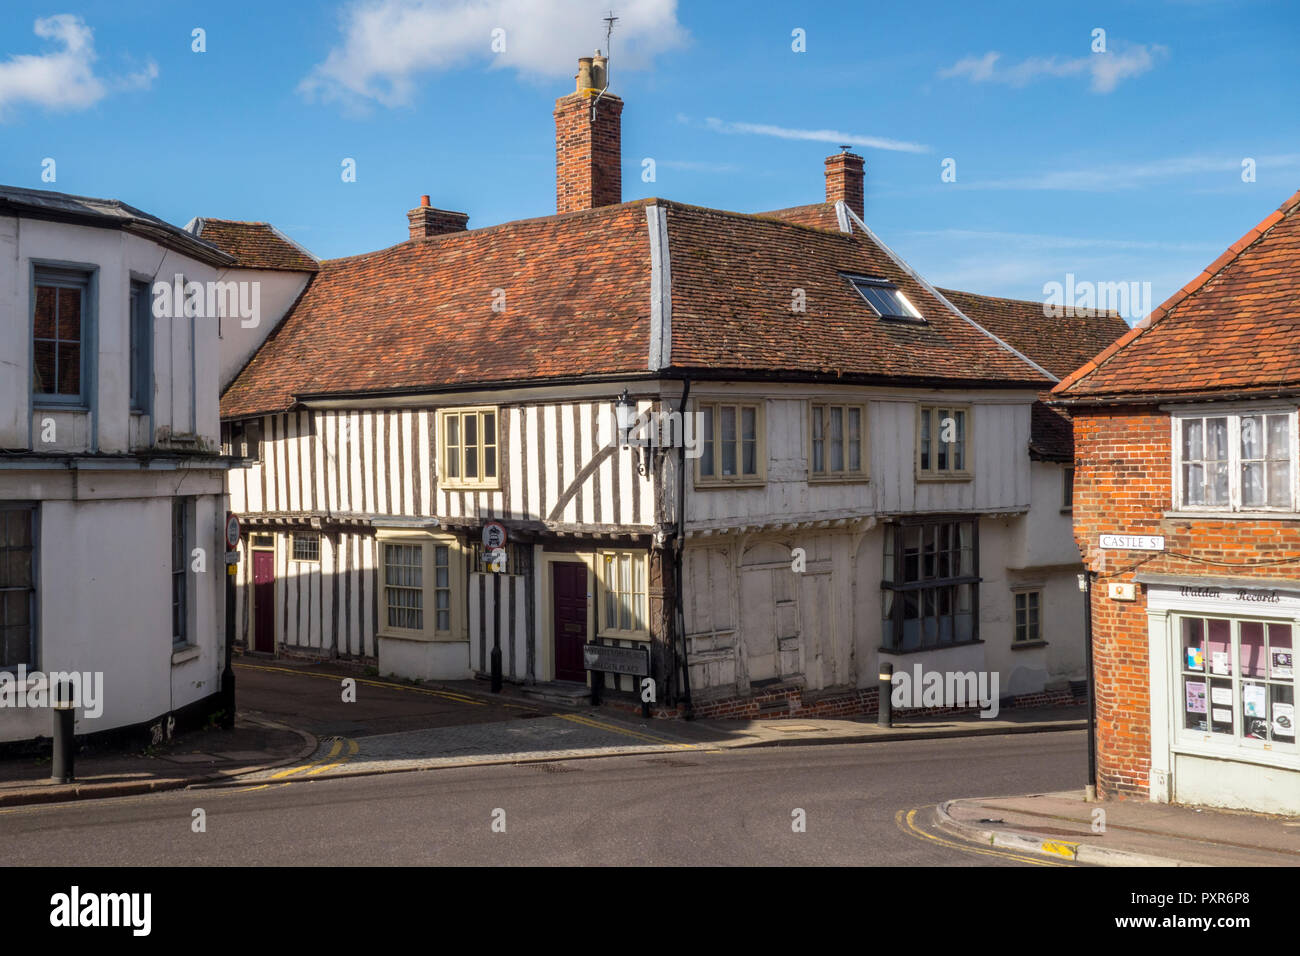 Historic One Myddylton Place, timber framed Tudor house, Saffron Walden, historic market town in Uttlesford, Essex, UK - Stock Image